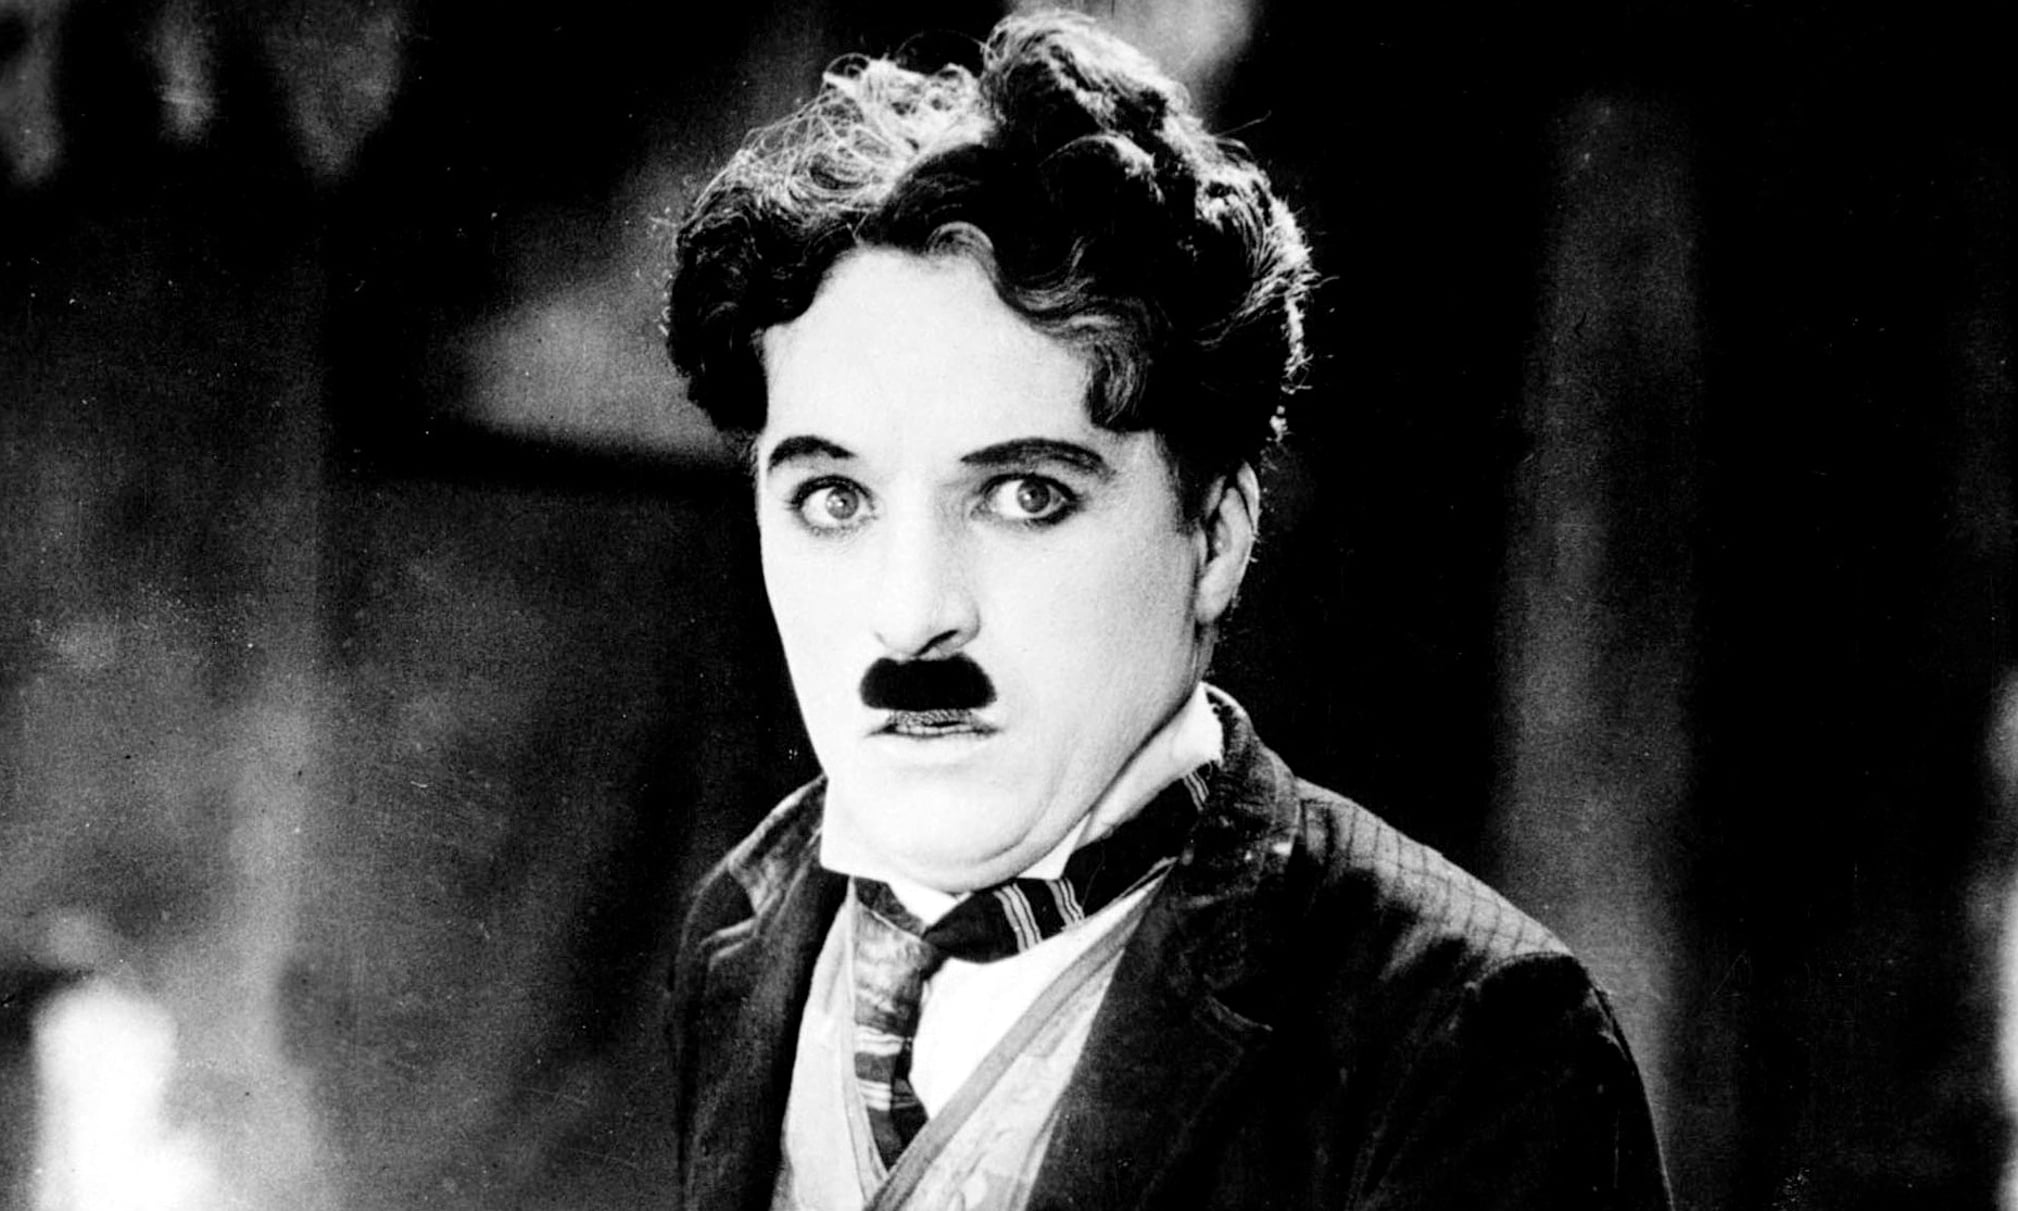 http://wallpapersqq.net/wp-content/uploads/2015/11/Charles-Chaplin-12.jpg